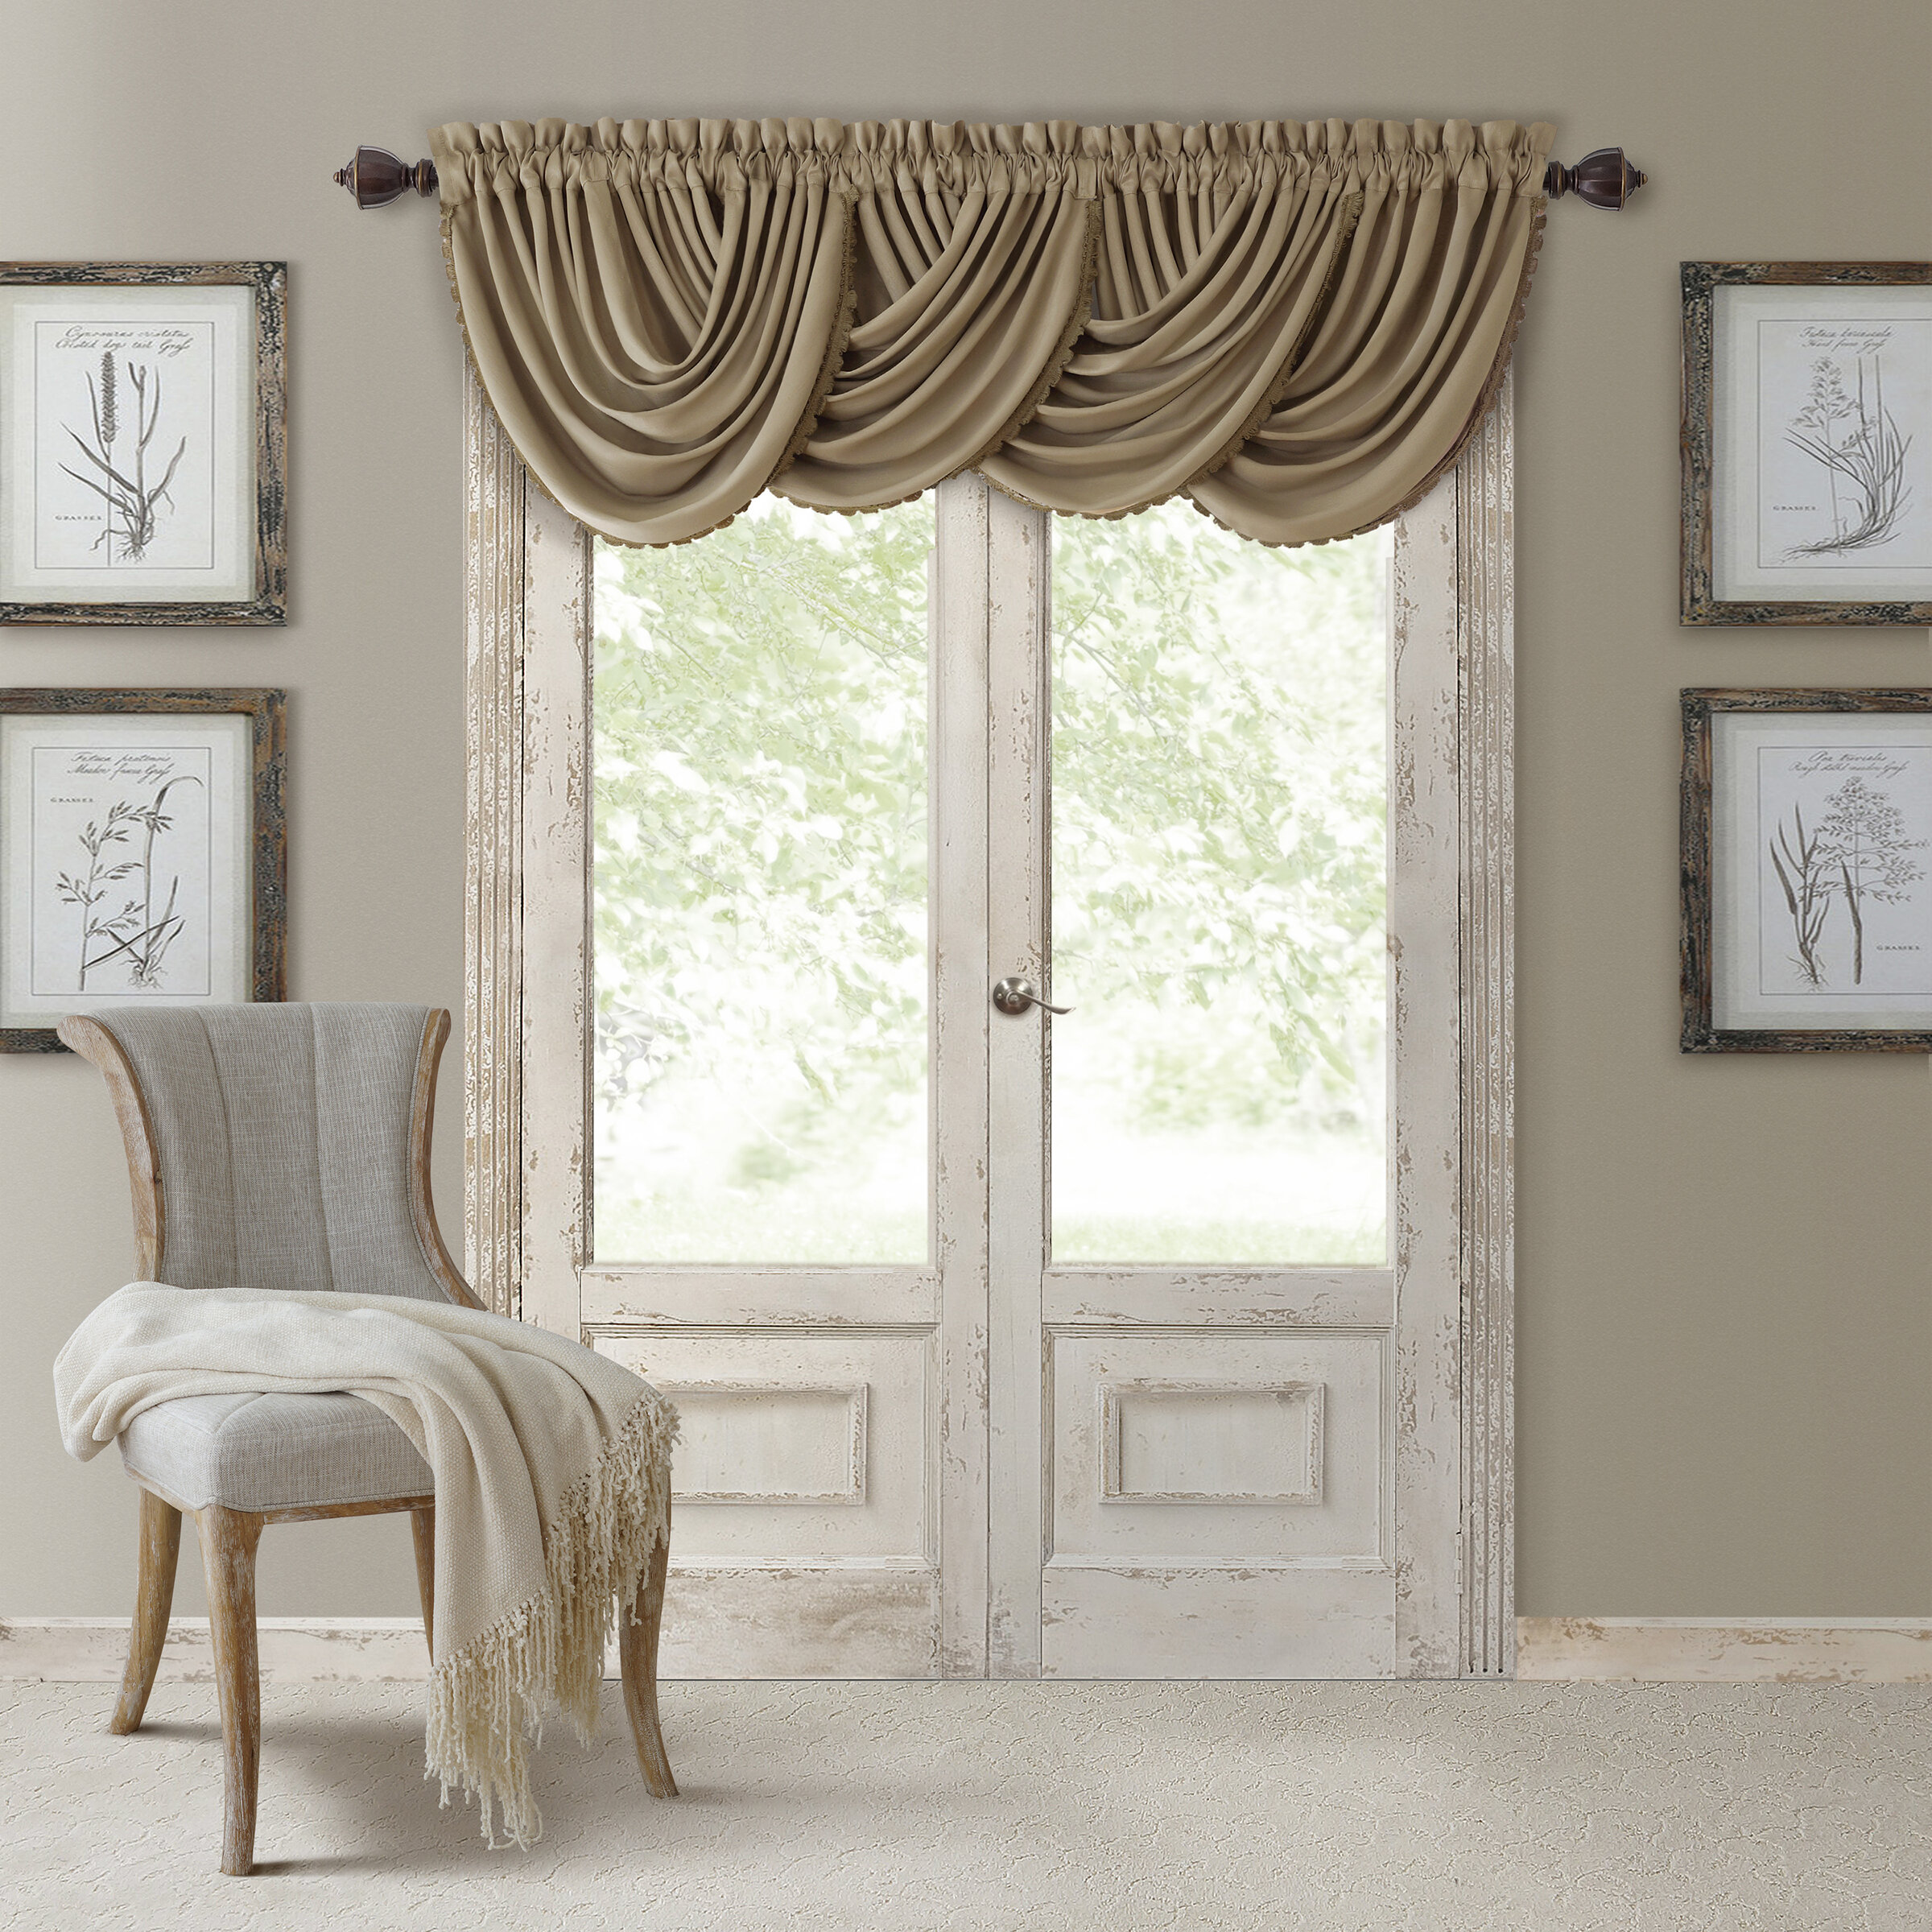 club the ideas home valances kitsch valance windows dining room stately decoration